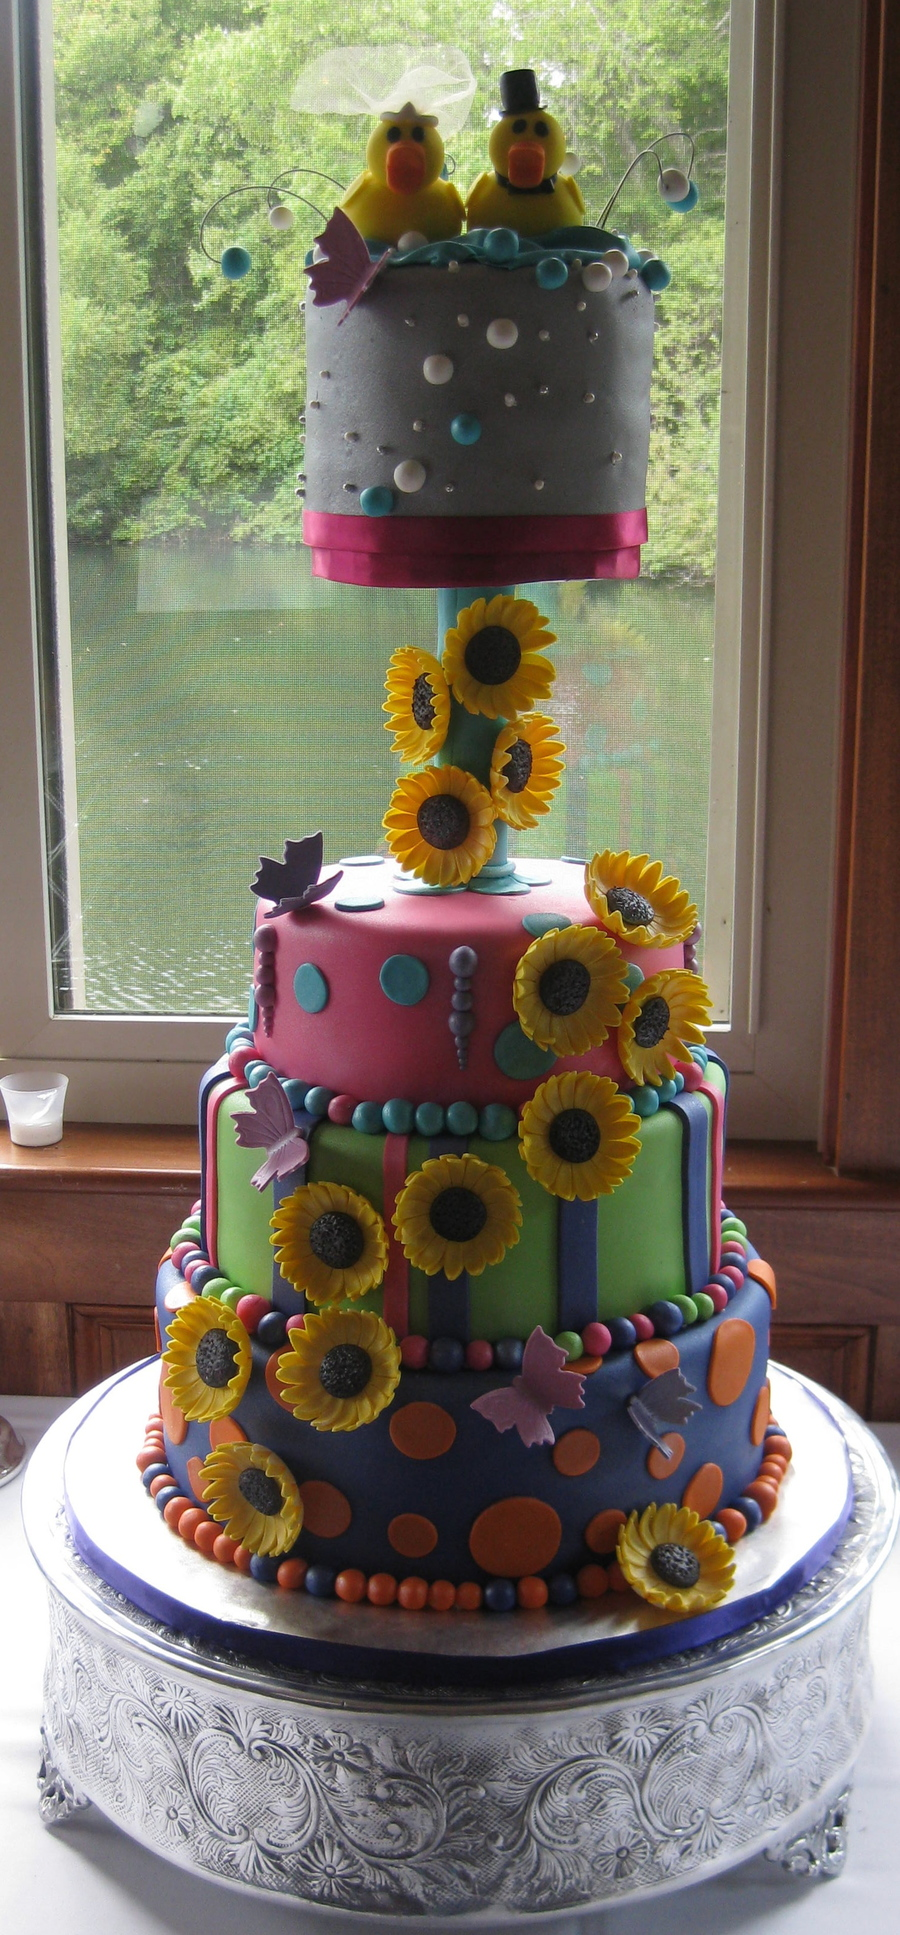 Rubber Duckies, Butterflies And Sunflowers on Cake Central